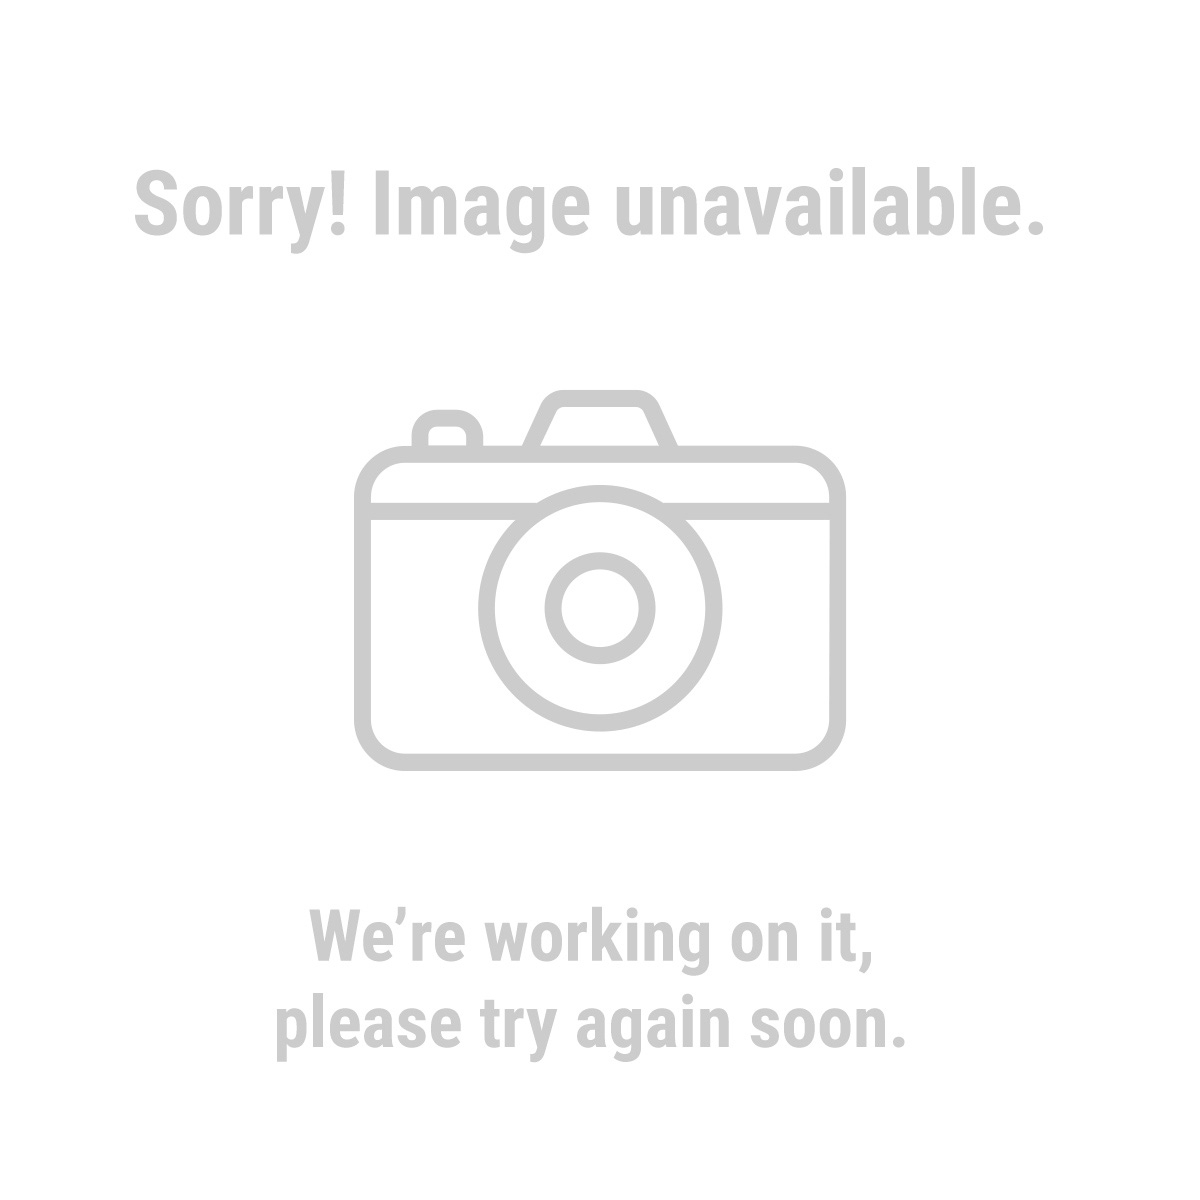 "90998 4"" x 3/4"" Stem Swivel Caster"